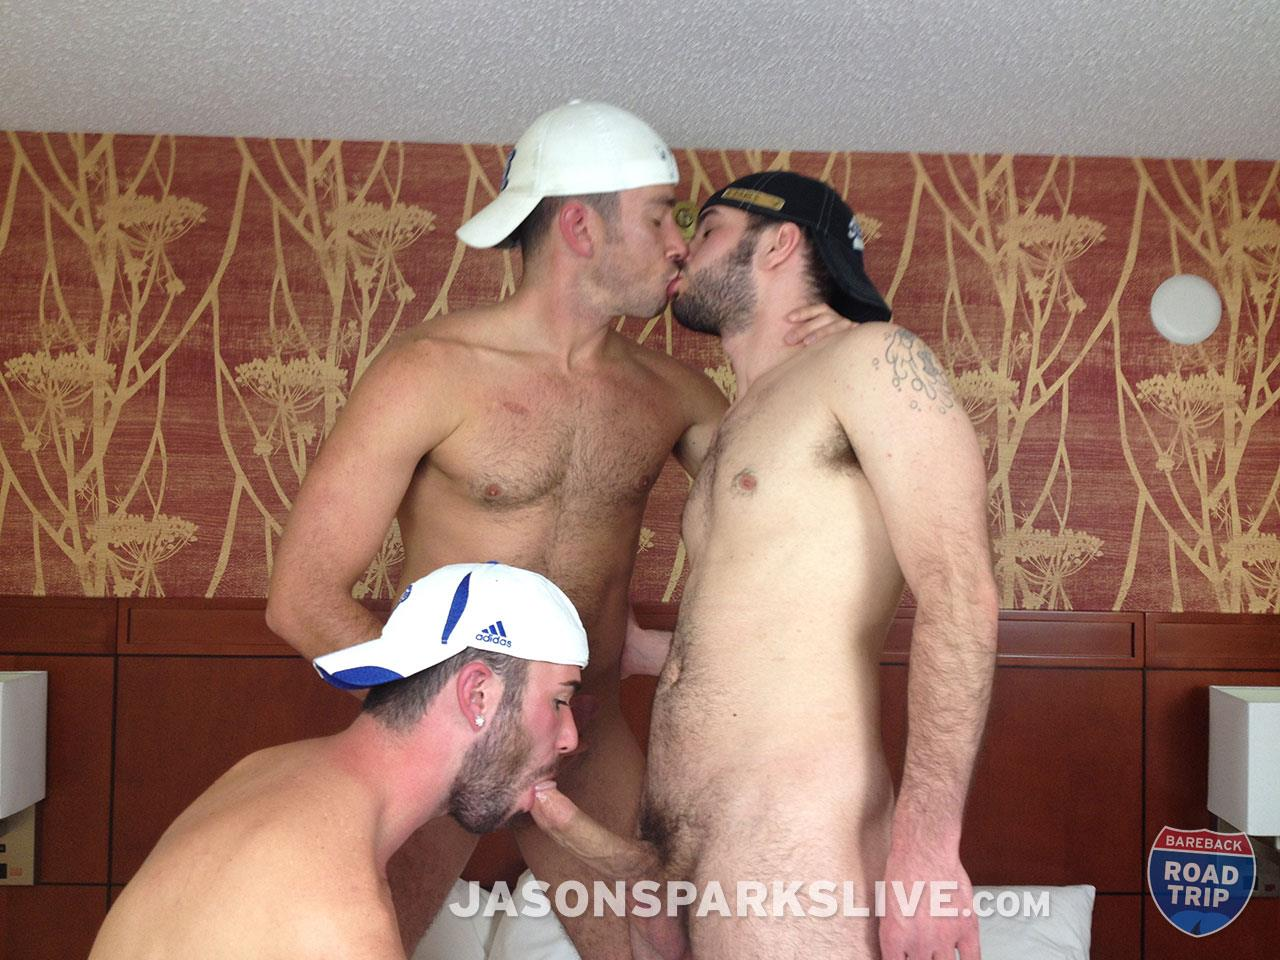 Jason-Sparks-Live-Lucas-Zander-and-Alex-Mason-and-Owen-Powers-Hairy-Twink-Bareback-Threeway-Amateur-Gay-Porn-04.jpg